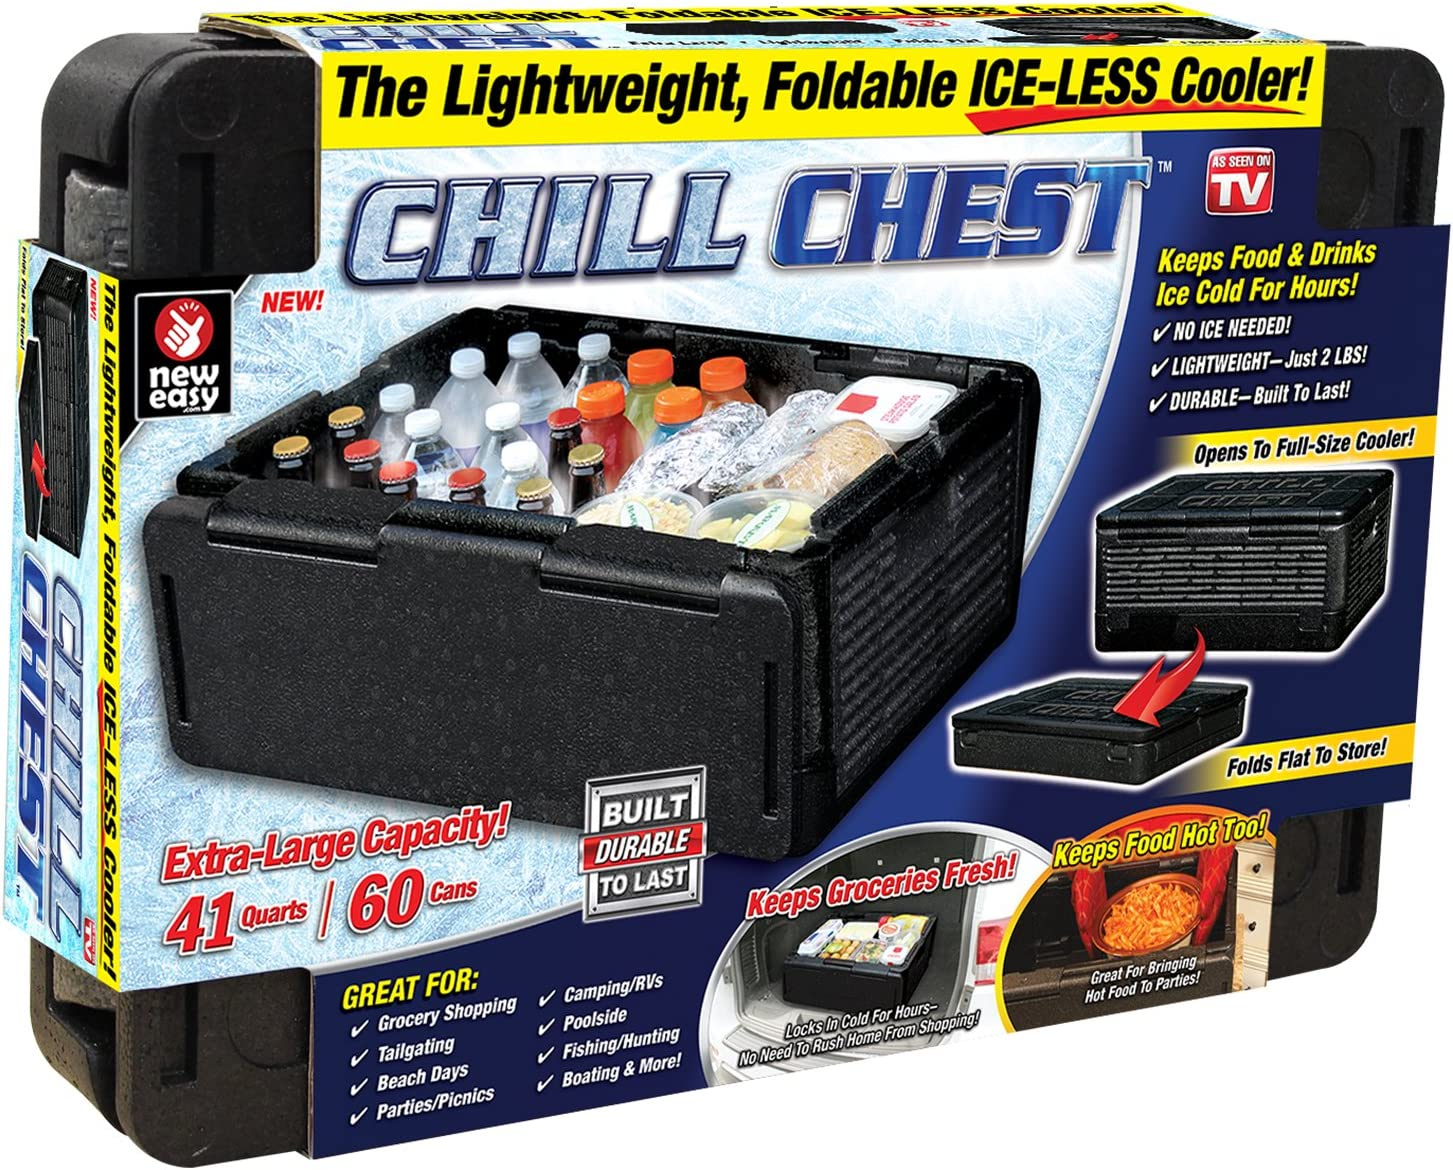 ONTEL Chill Chest Cooler 60 Cans, Collapsible, Insulated, Lightweight, Portable, Waterproof Great for Parties, Picnics, Camping, Beach, Tailgating, Fishing, Hunting, Boating and More